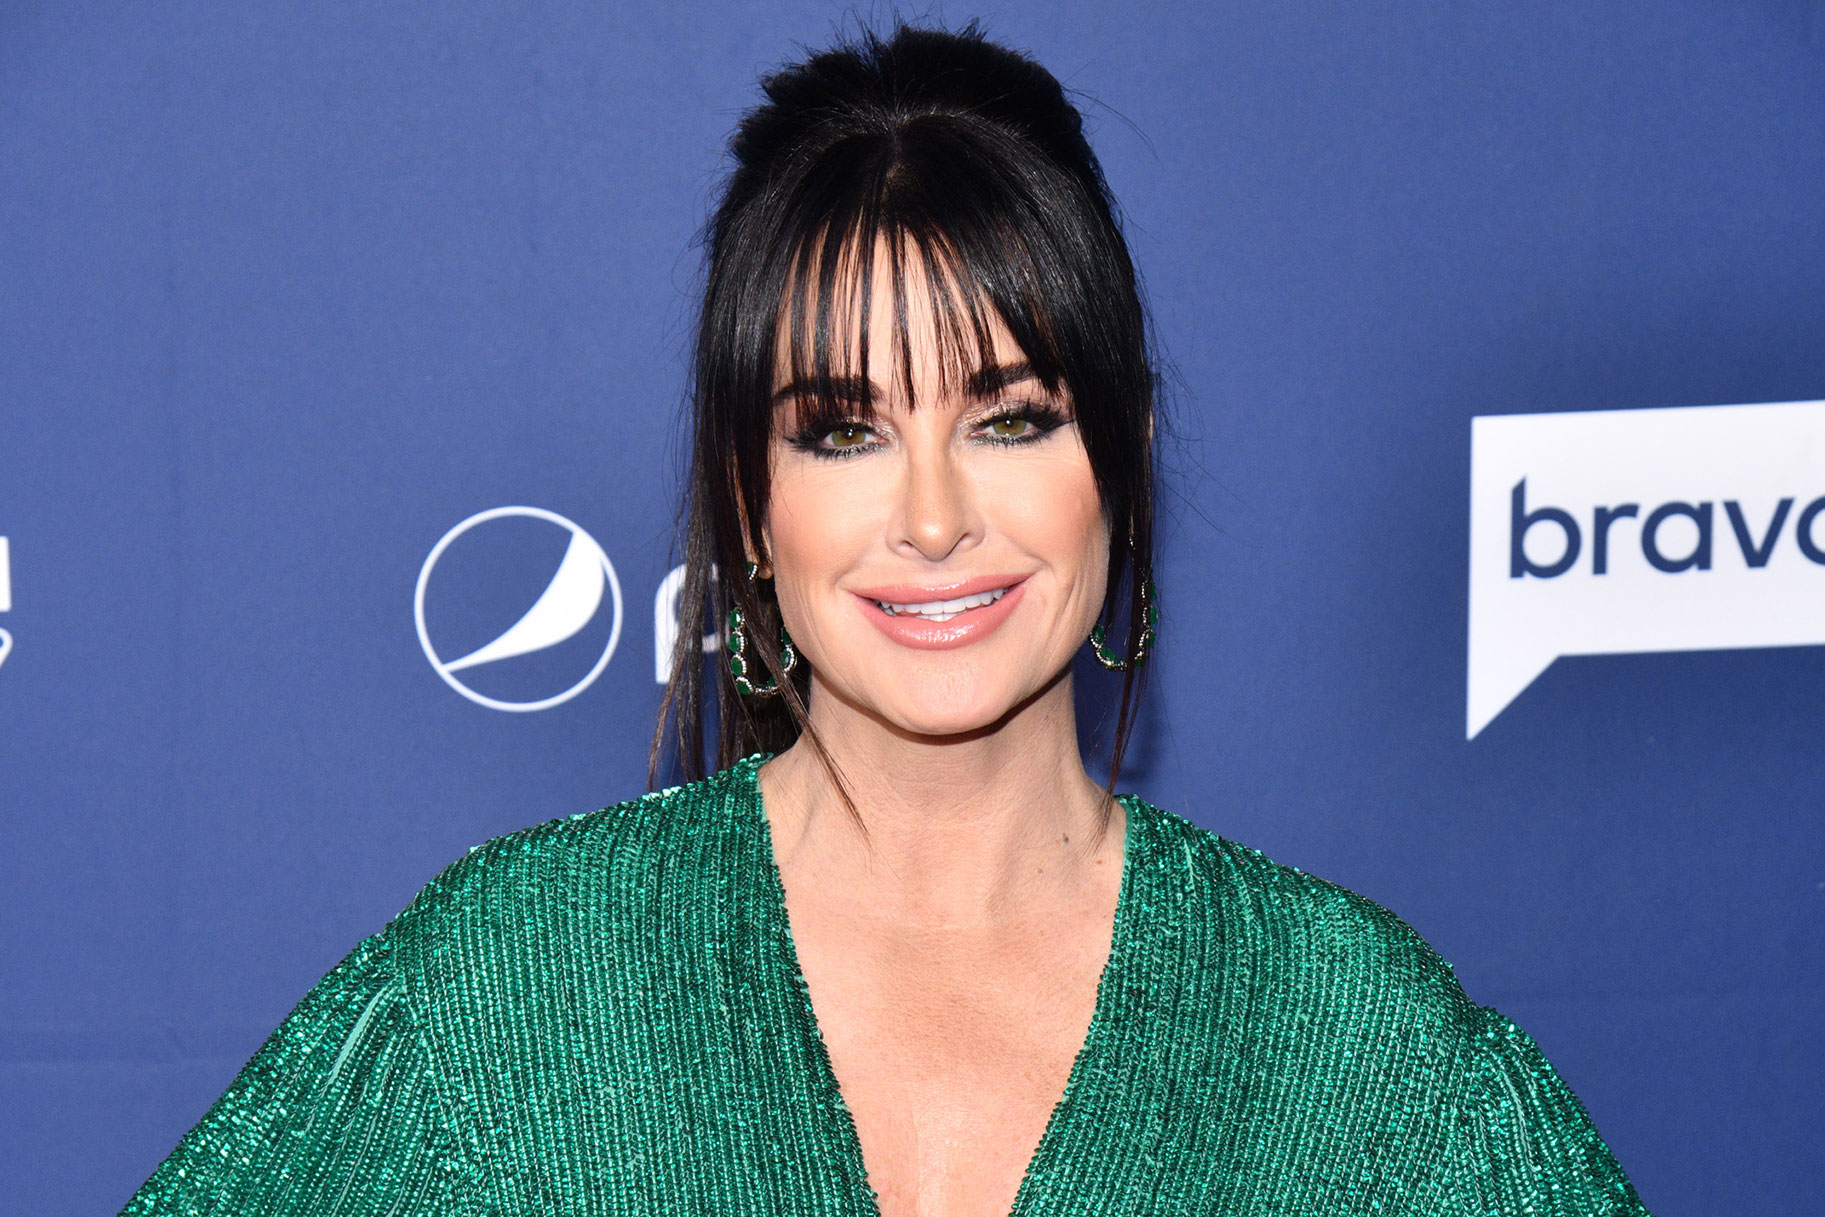 Kyle Richards Rhobh Birkin Burglary